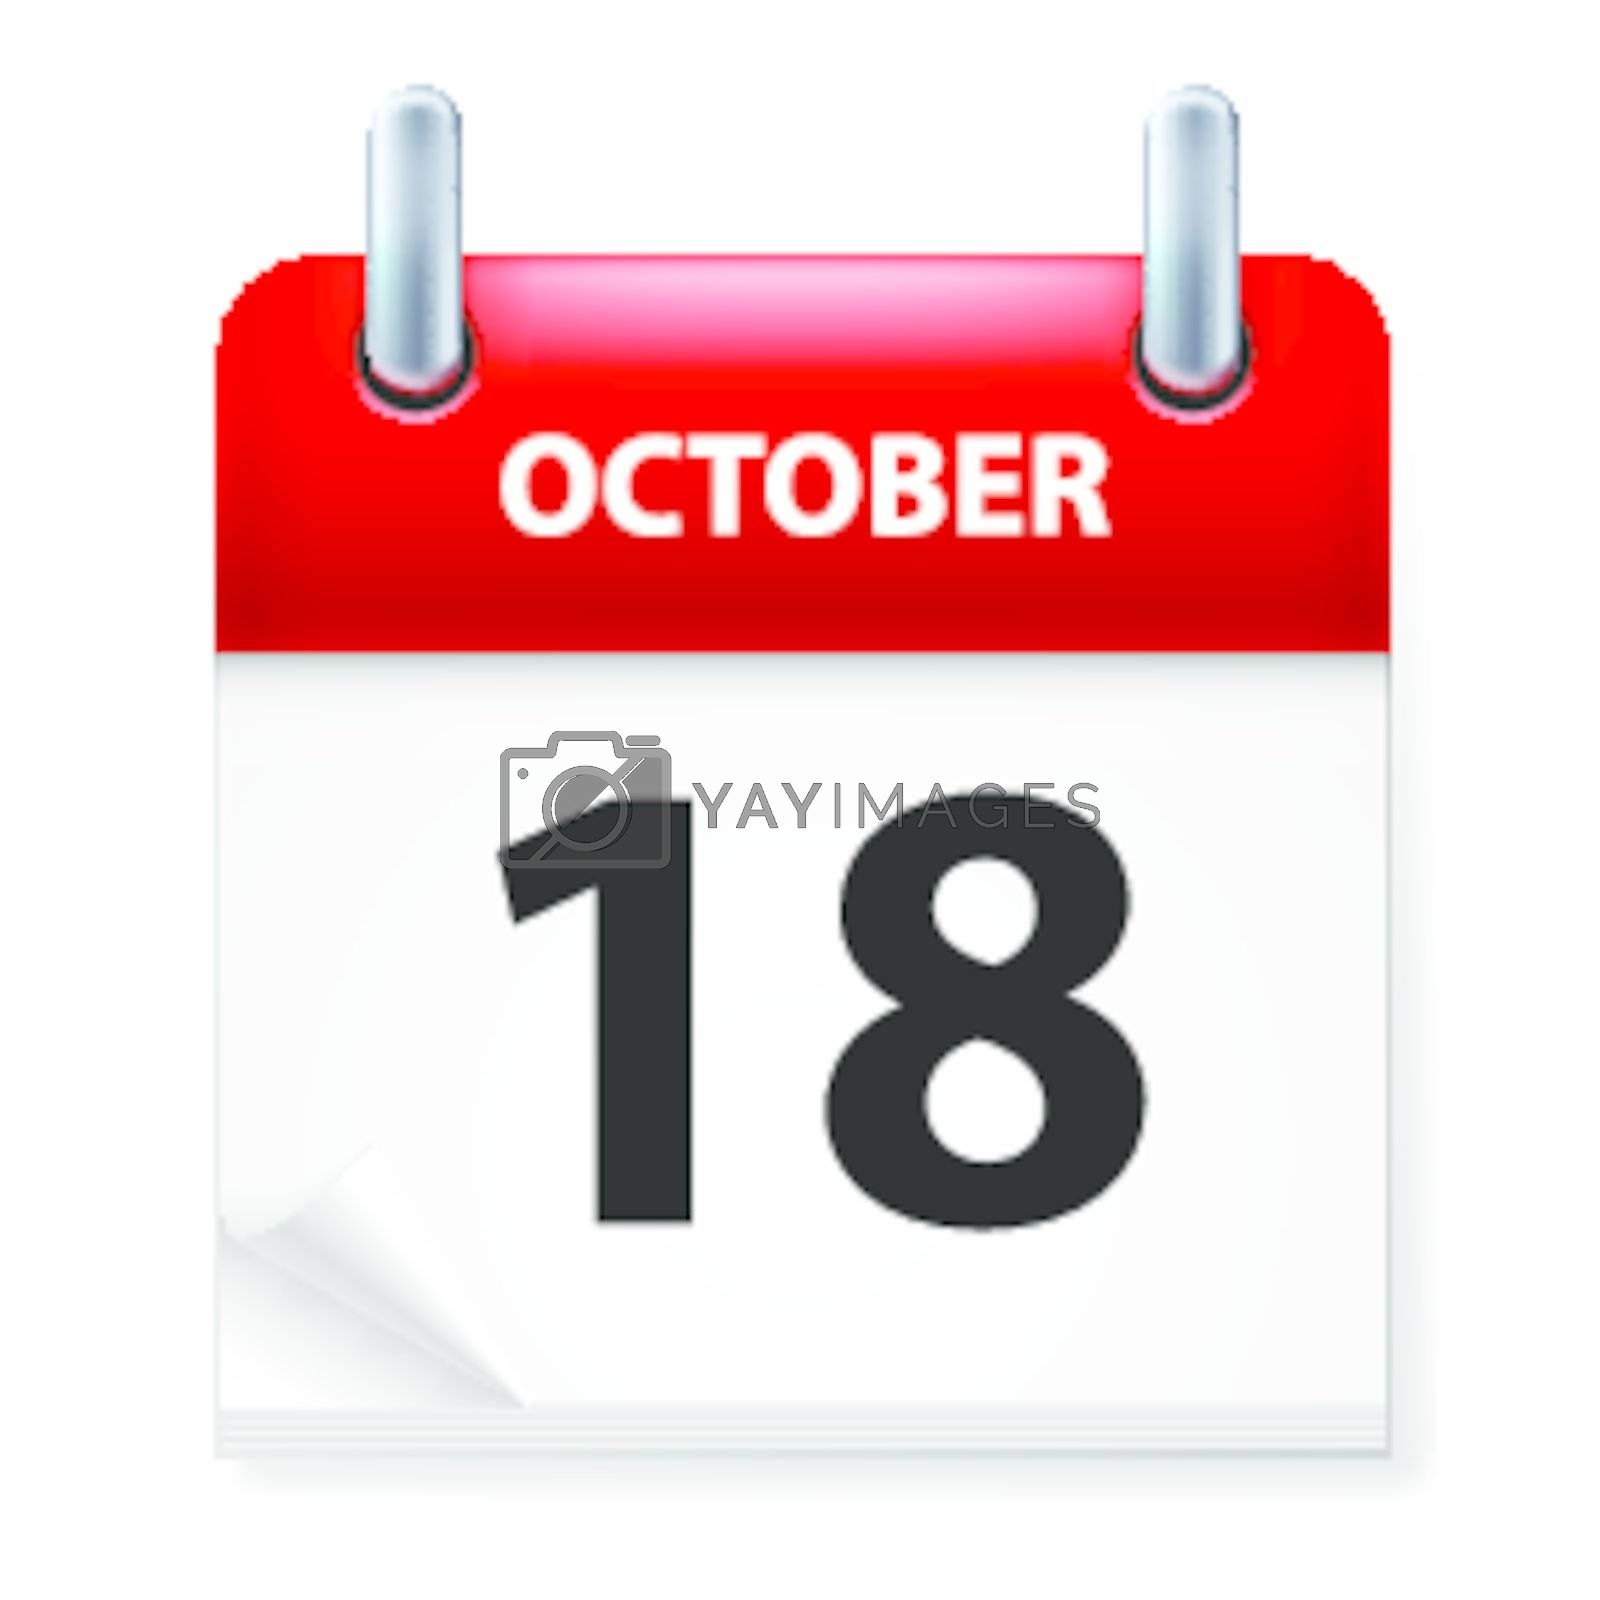 Eighteenth October in Calendar icon on white background